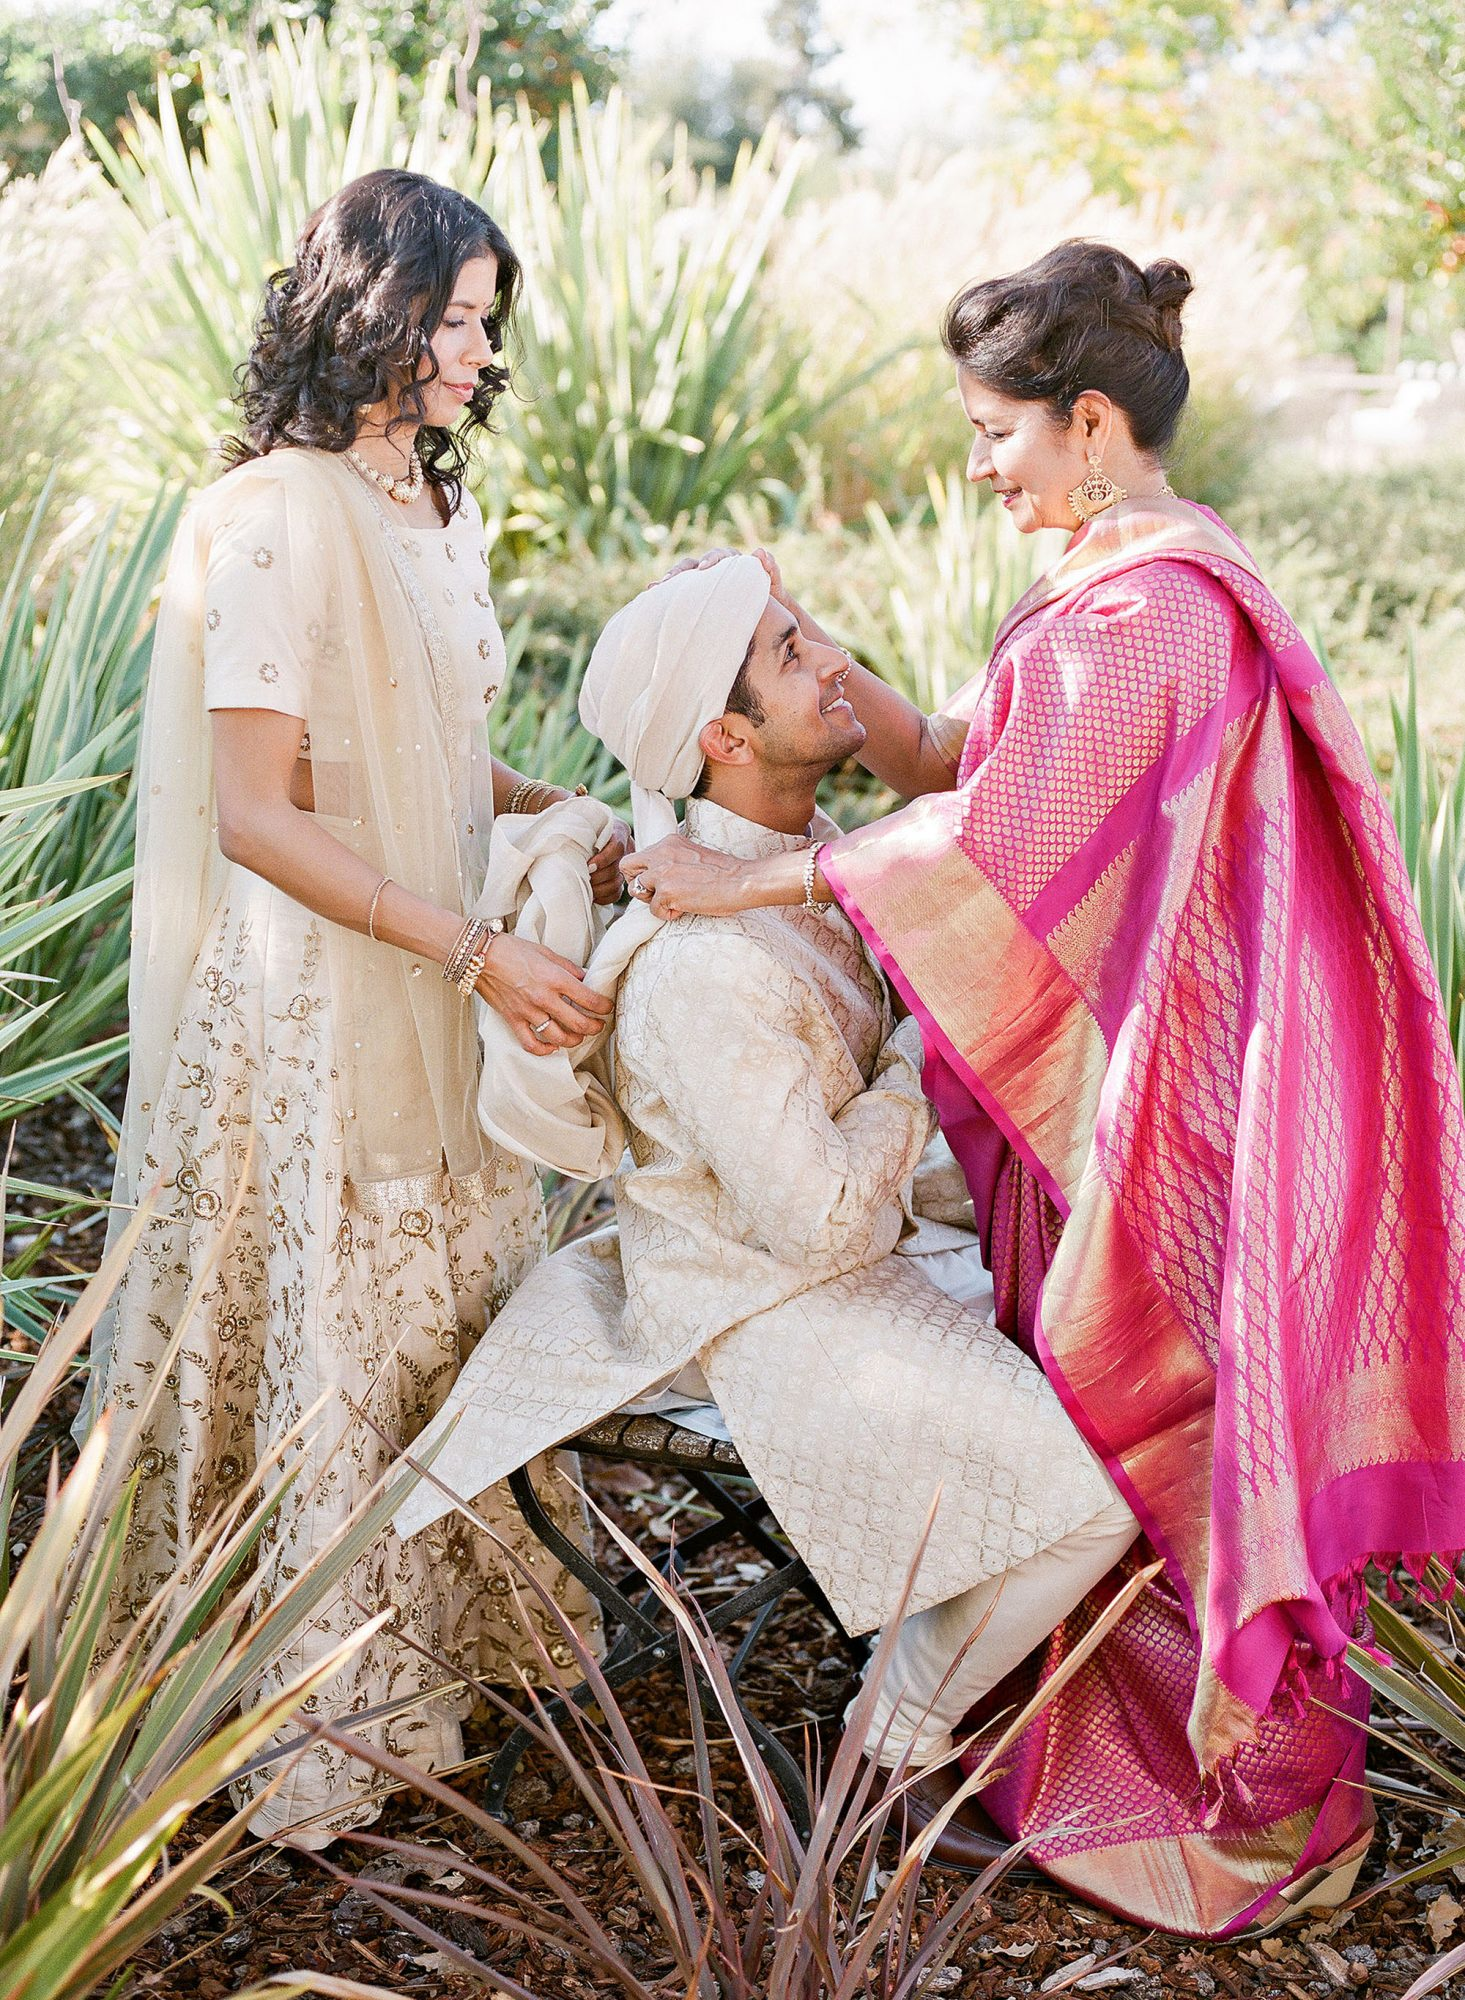 jenna alok wedding wine country california mother sister tying groom turban